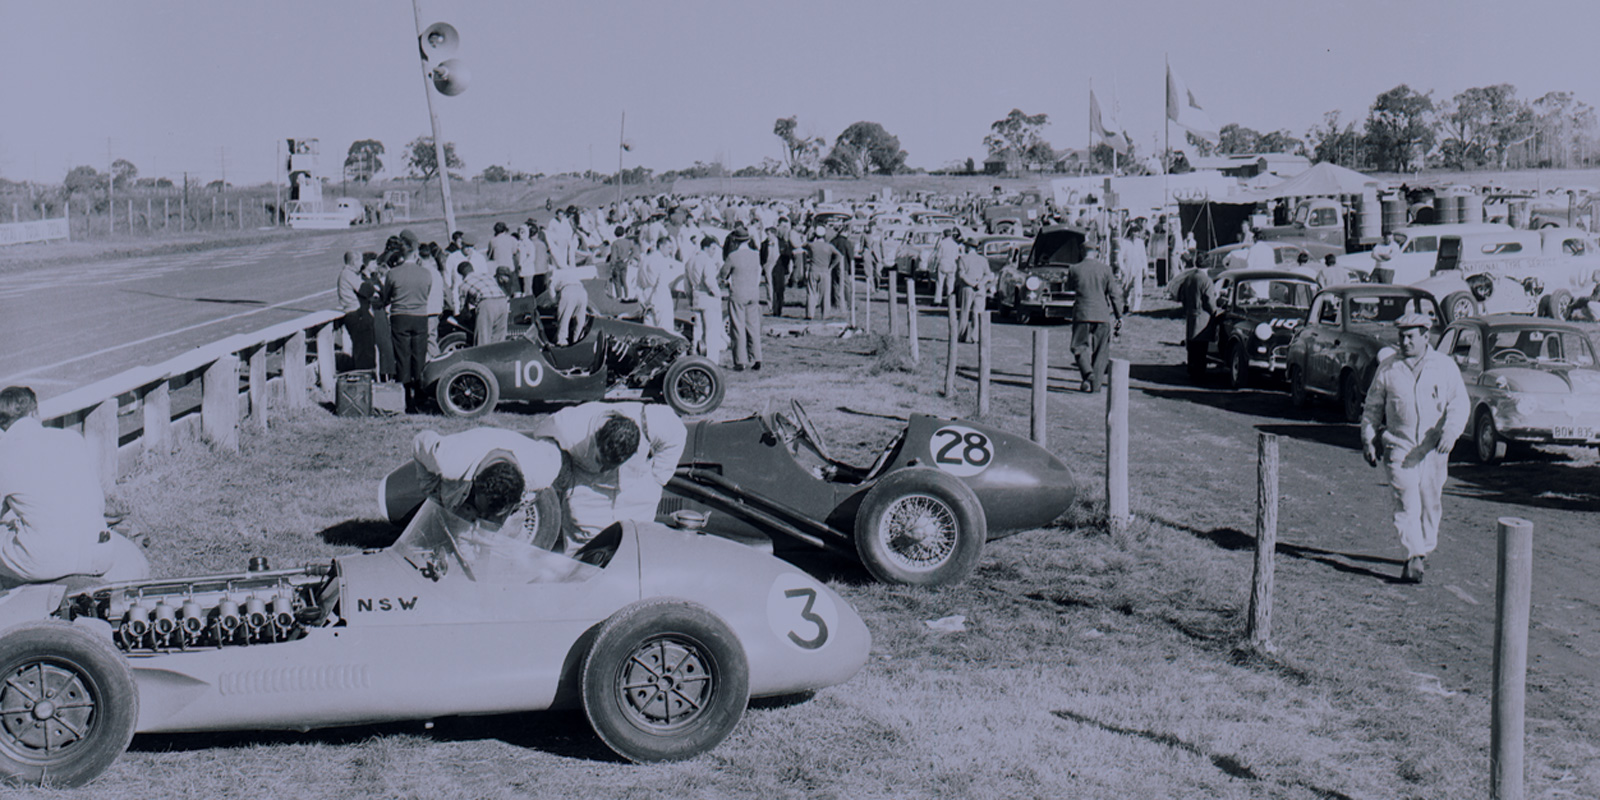 Gnoo Blas Car Race 1956 - Pit area